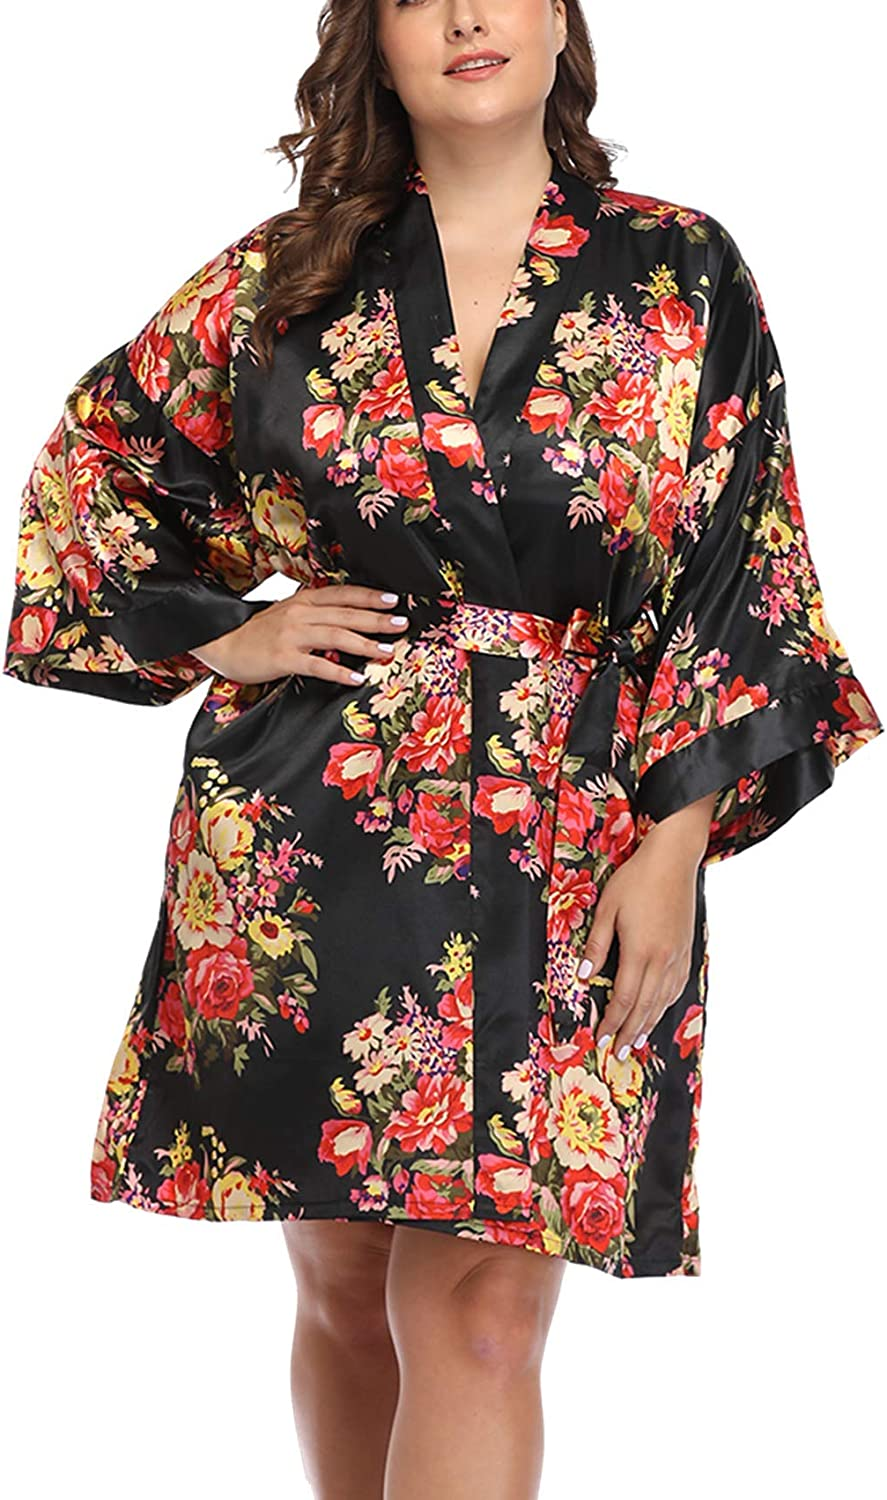 Women's Plus Size Floral Satin Wedding favorite Robe Nig Bridesmaid Bride Cheap mail order specialty store